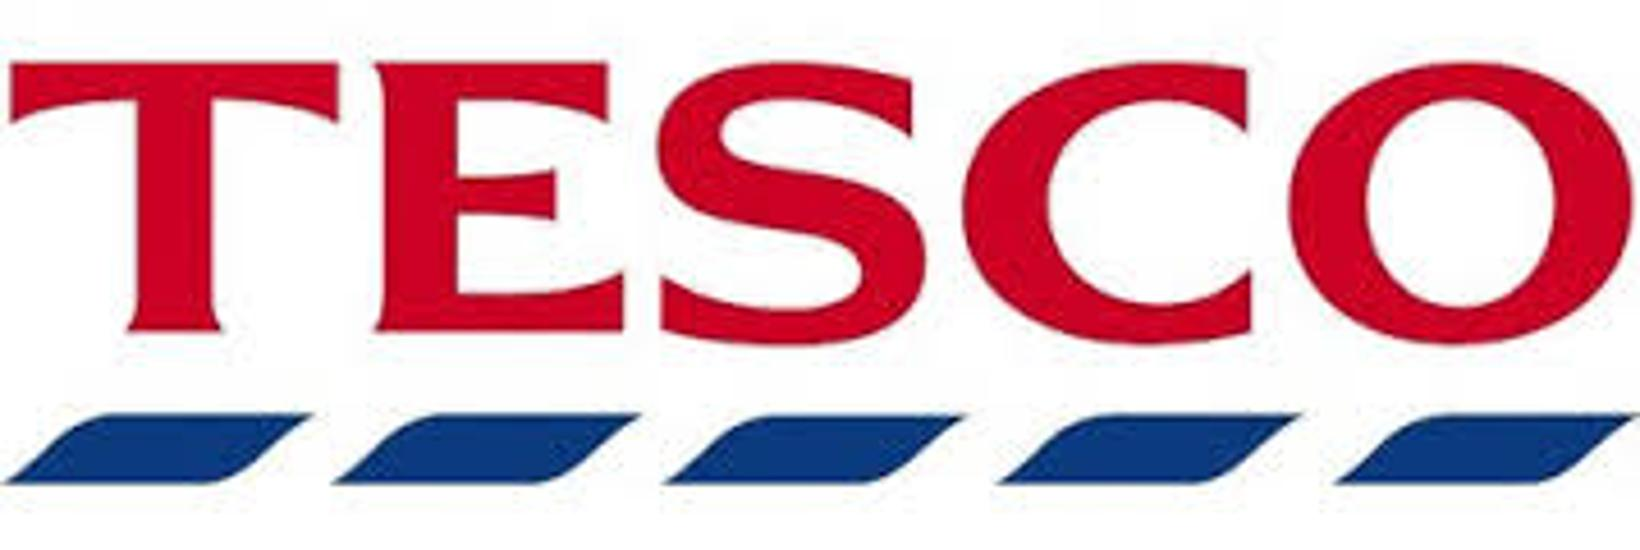 Tesco Hungary: Central Europe - The Region Of The  Generous